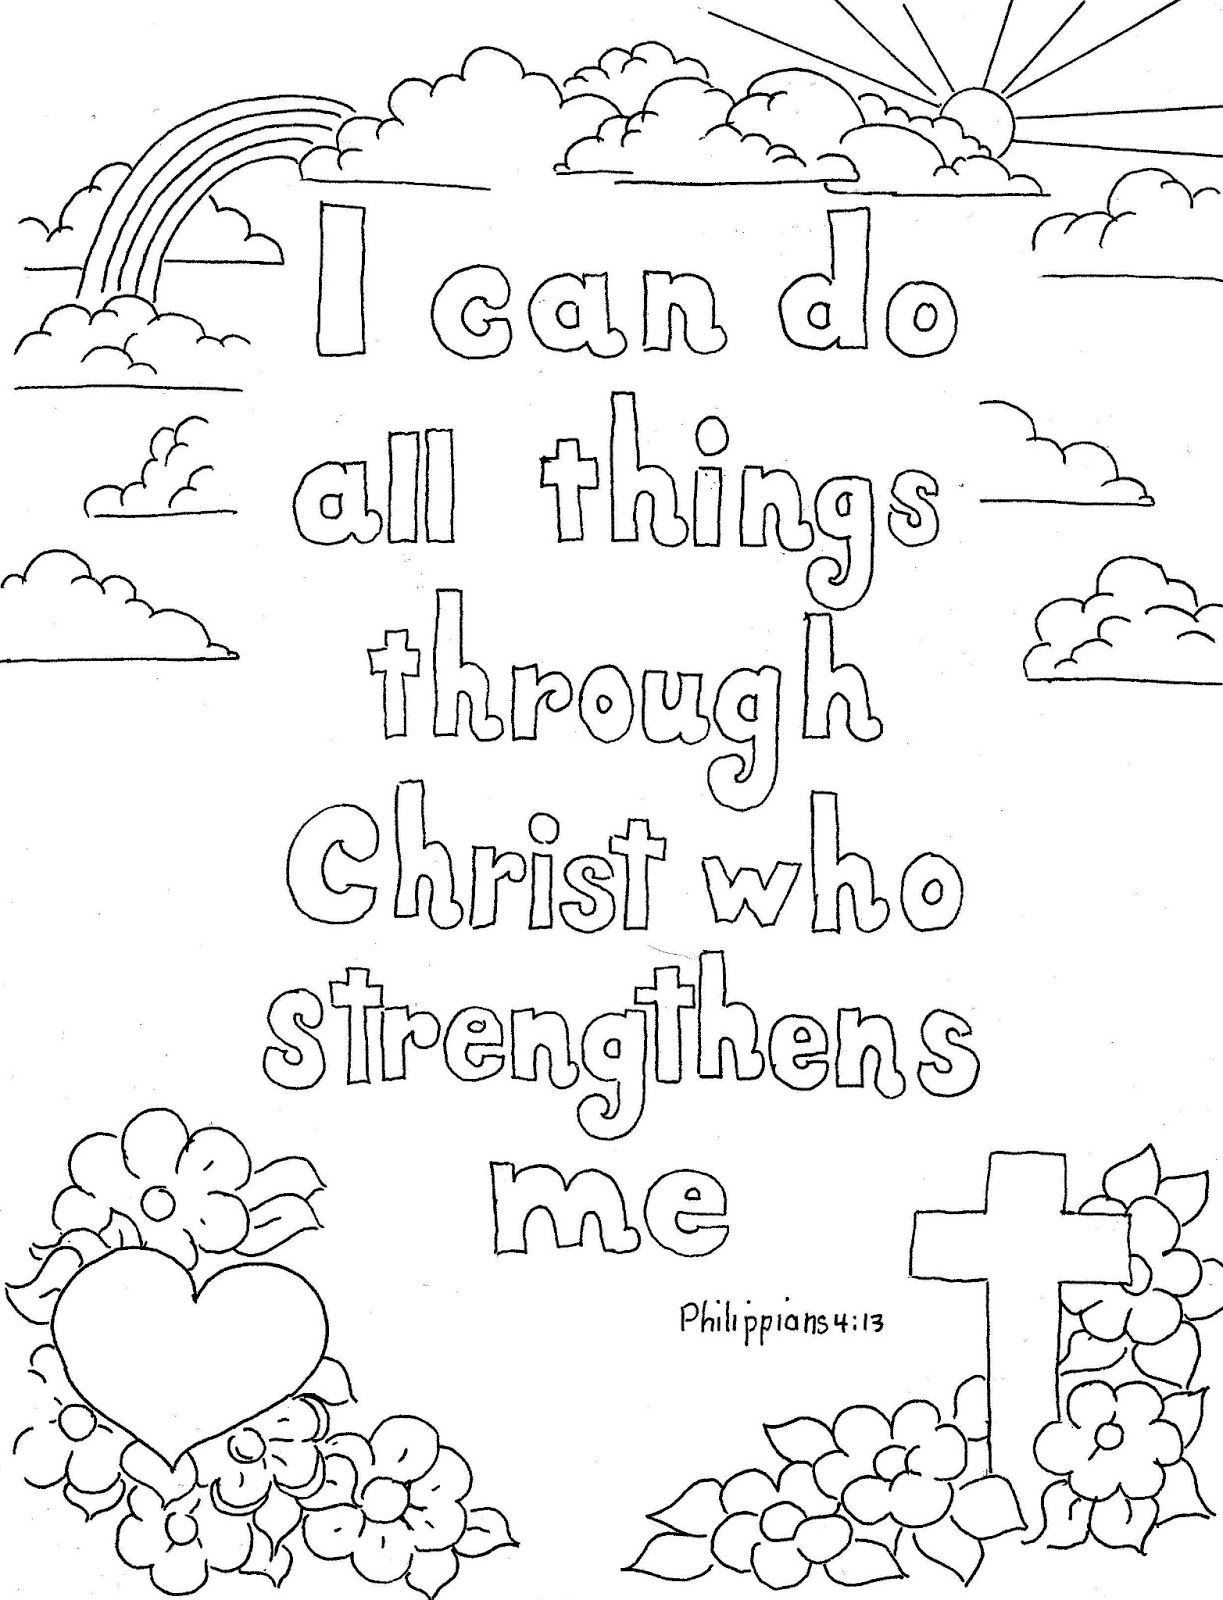 Coloring pages with bible verses - This Coloring Page Is A Popular Bible Verse With Fun Illustrations And The Words Of The Verse That May Be Printed And Used By Parents And T